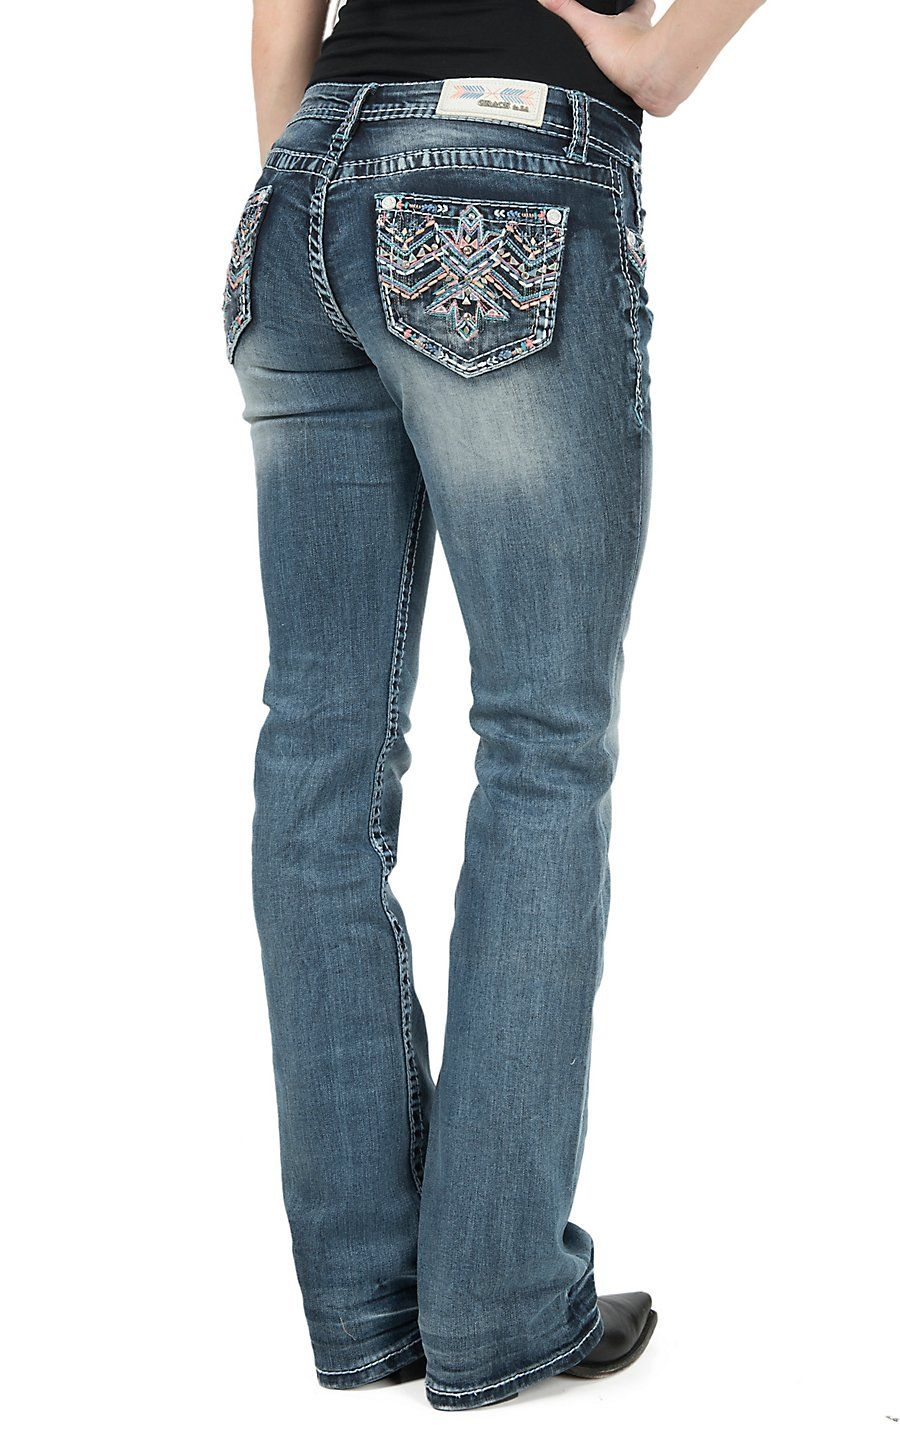 25a6ce3449 Grace in LA Women s Medium Wash Open Pocket with Colorful Zig Zag  Embroidery Boot Cut Jeans